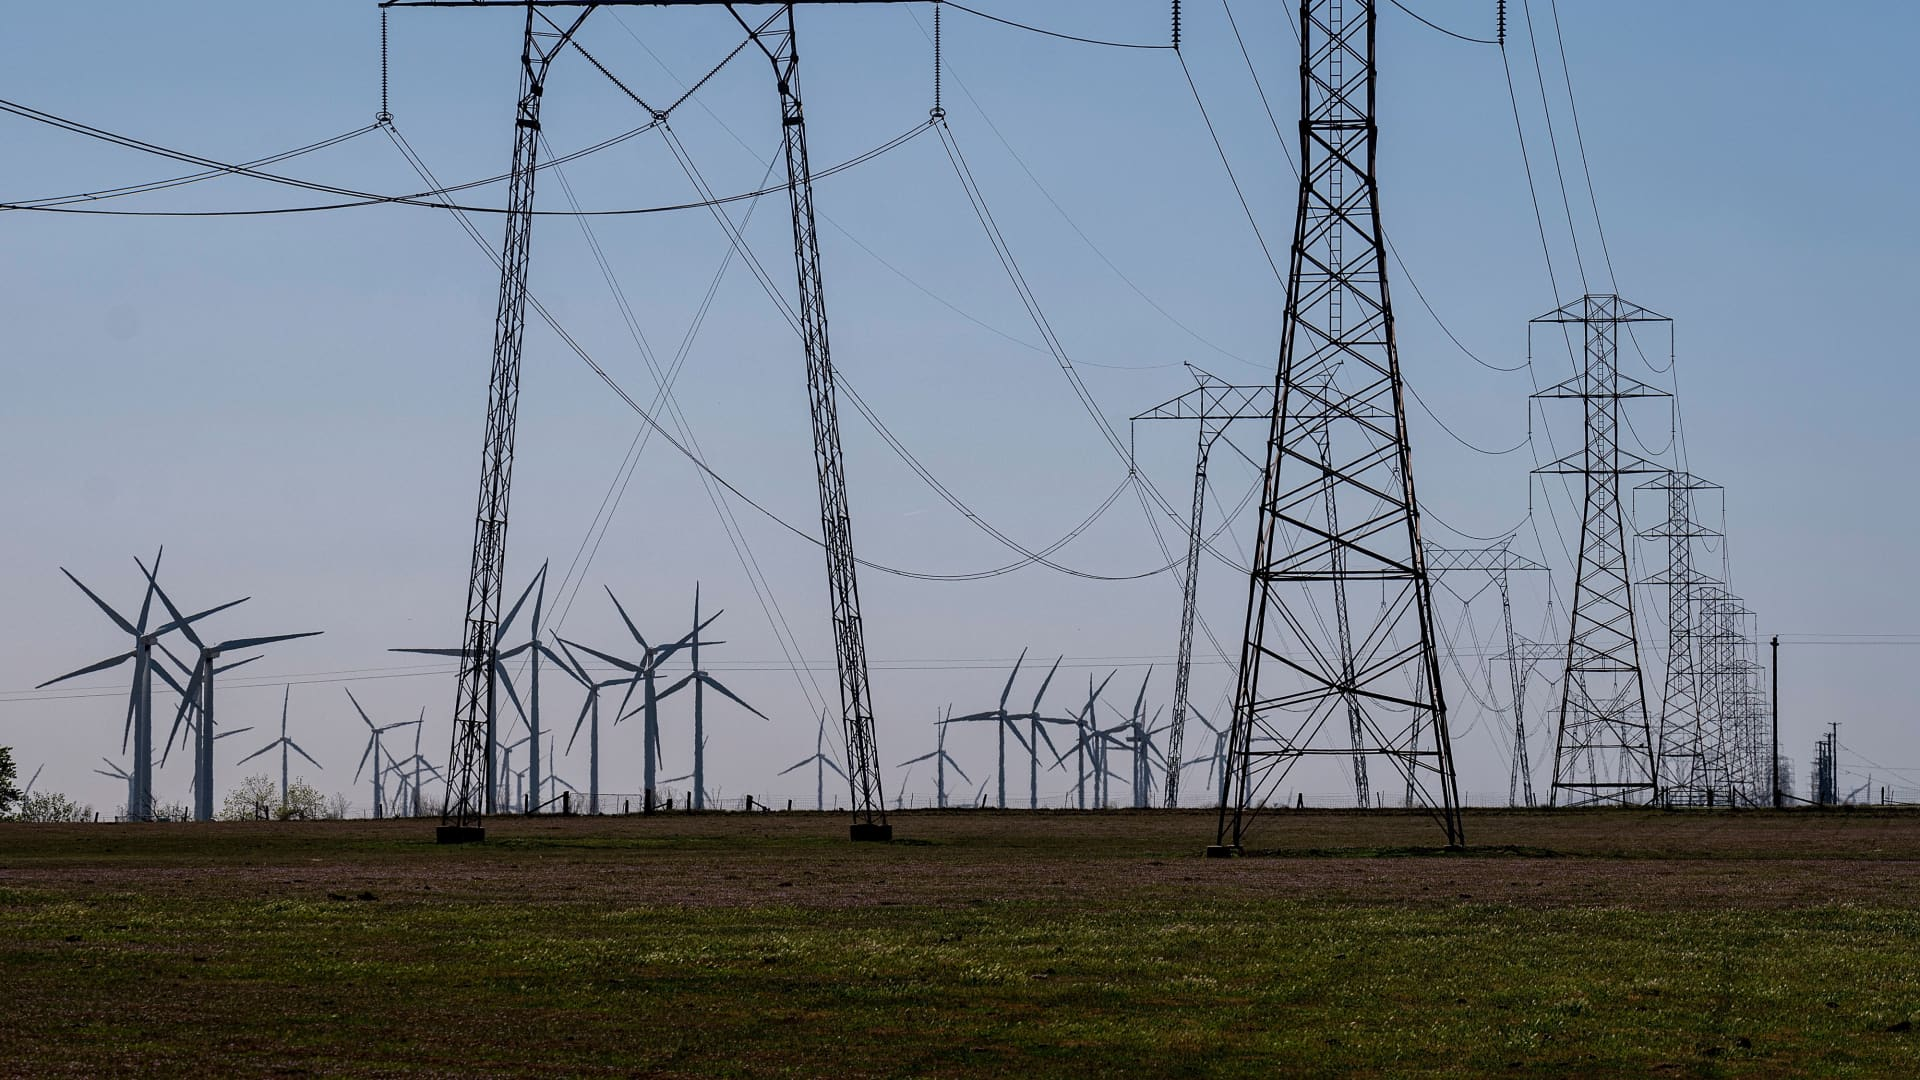 Wind turbines and power transmission lines at a wind farm near Highway 12 in Rio Vista, California, on Tuesday, March 30, 2021.